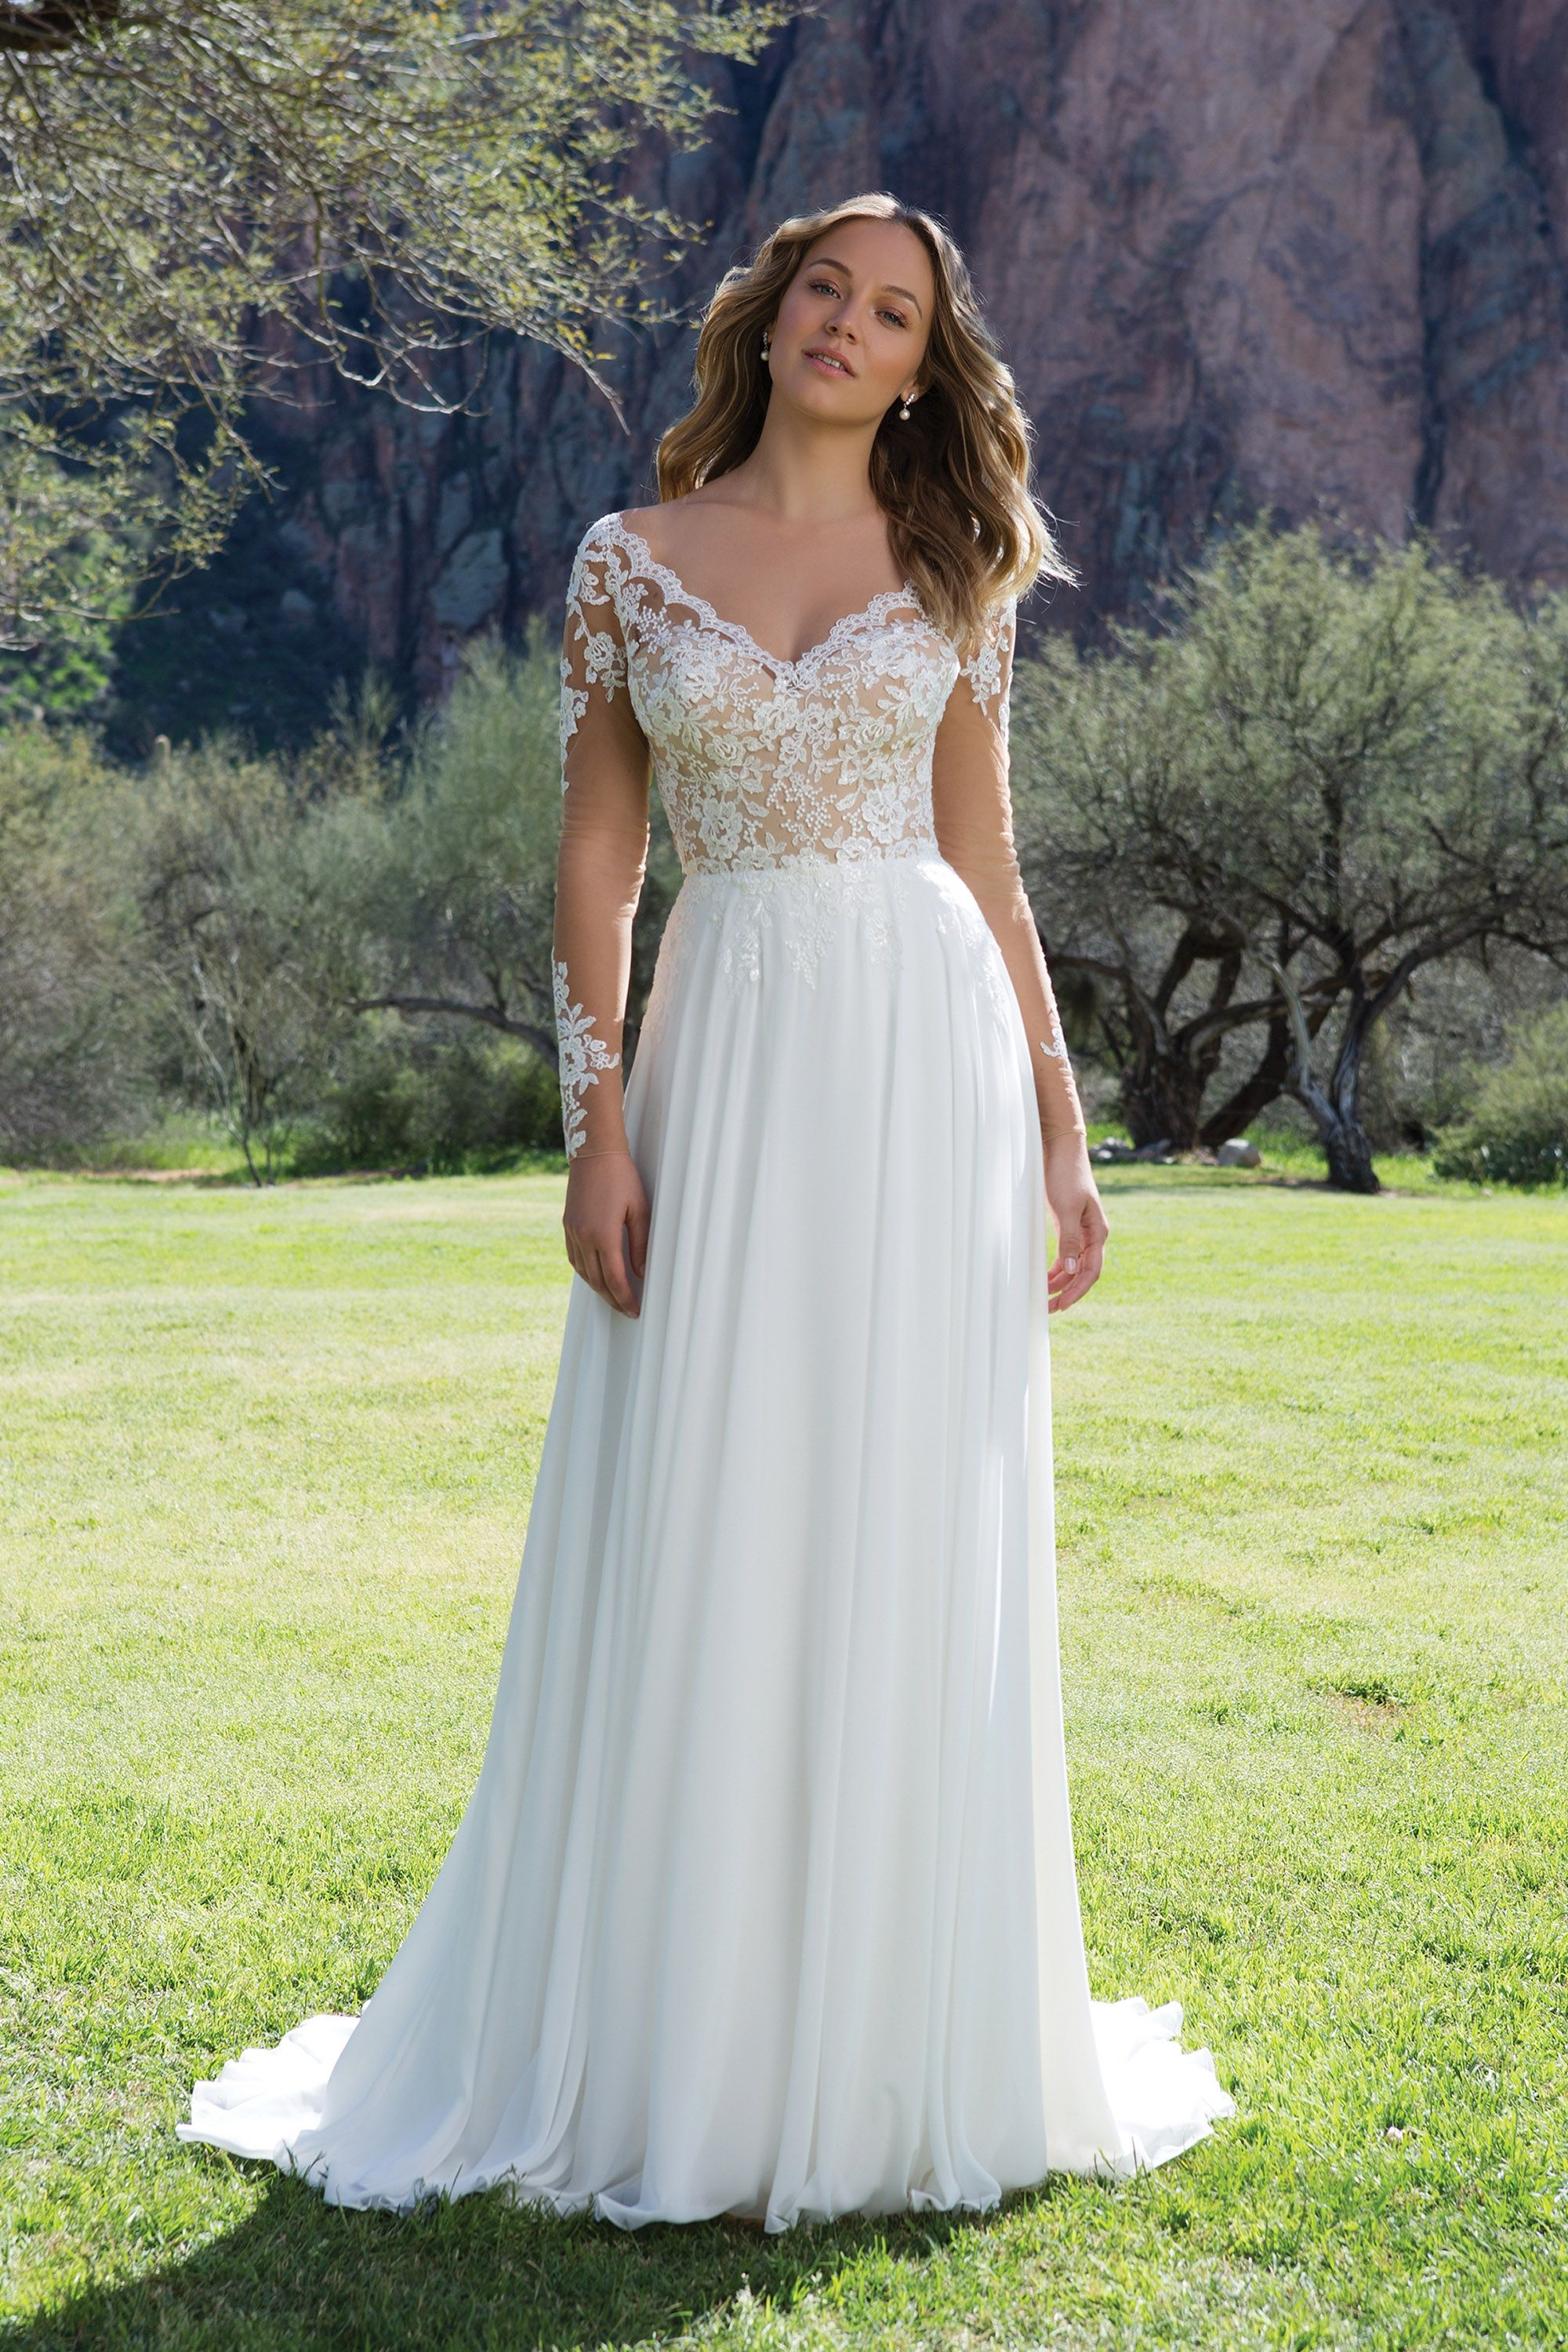 Sweetheart Gowns 1130 Ivory/Ivory Size 6 Lace V-Neck Gown with ...